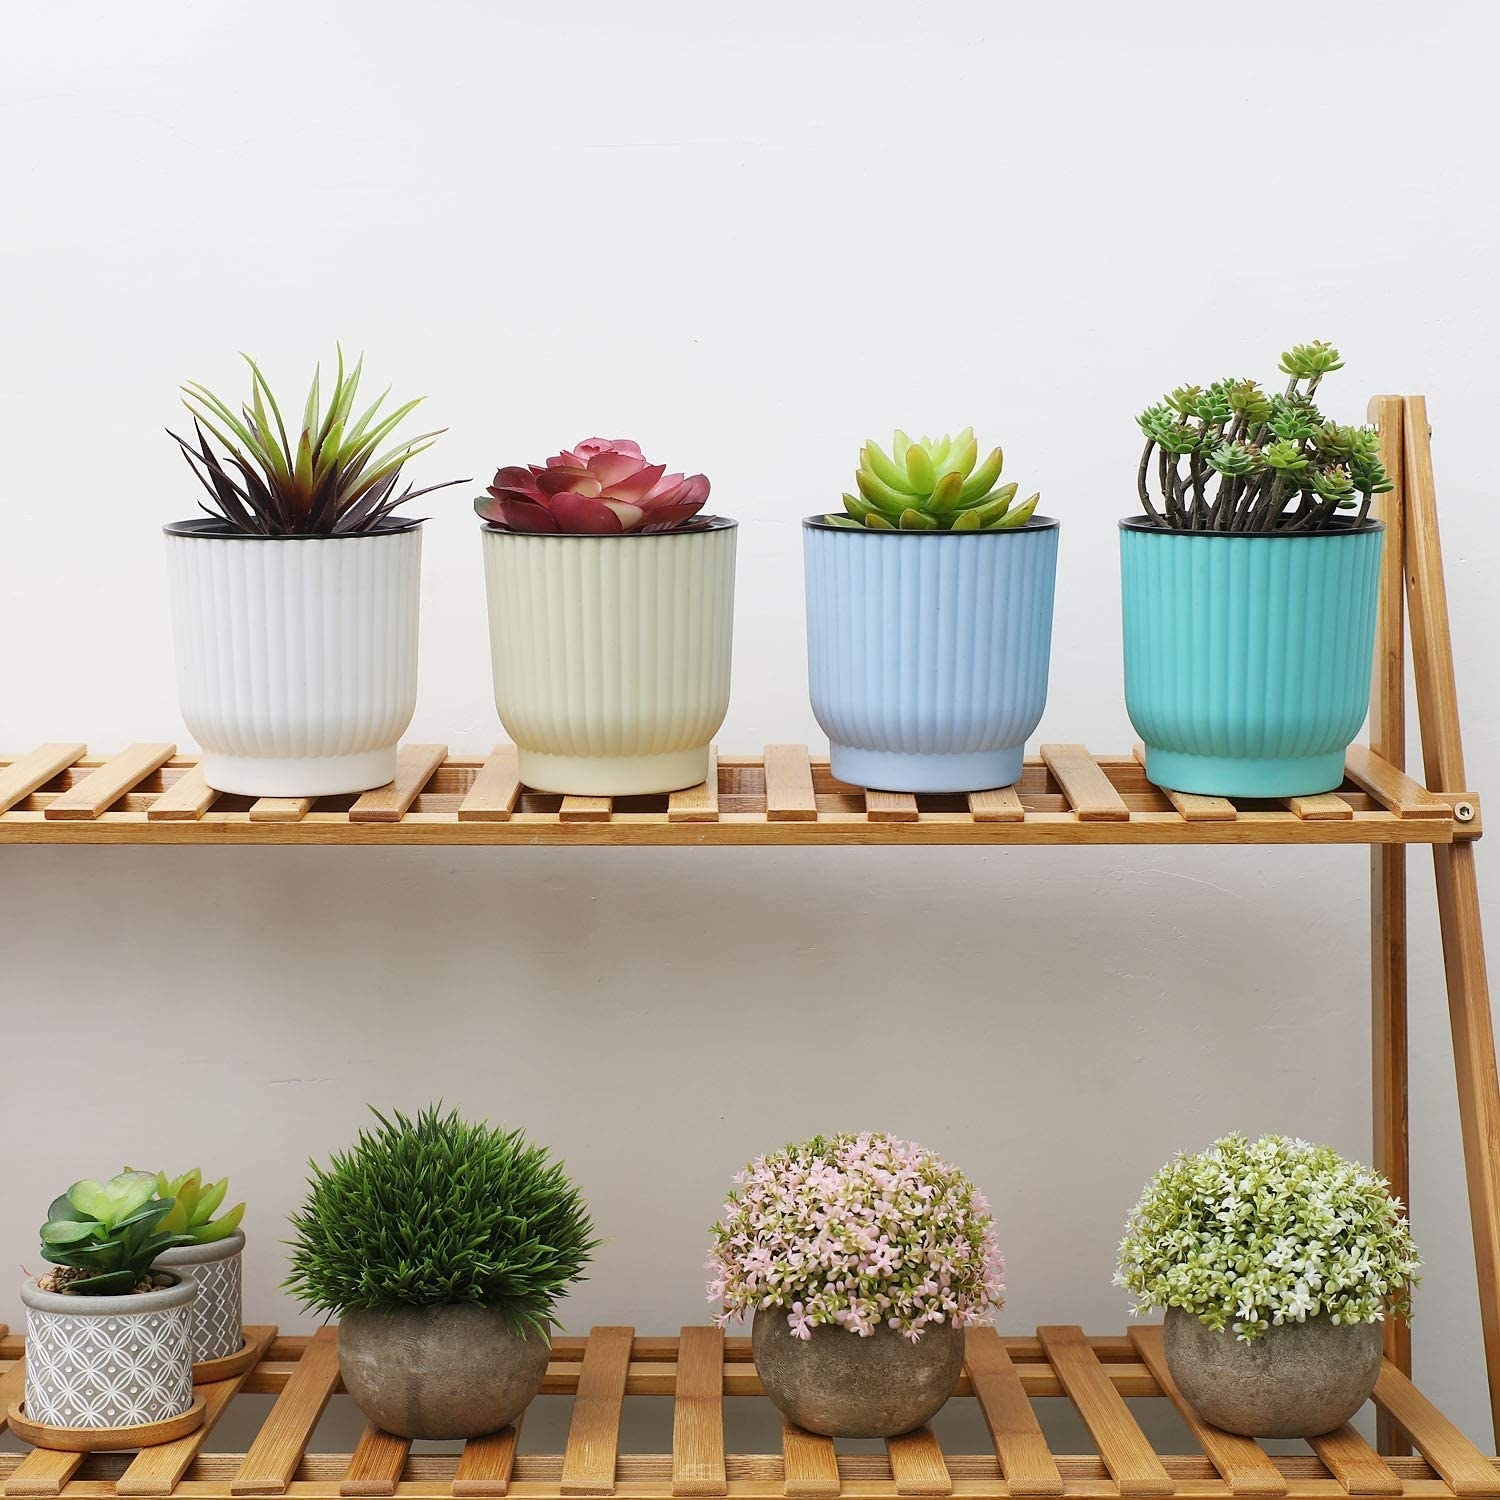 A set of four self-watering planters arranged side by side on a bamboo shelf